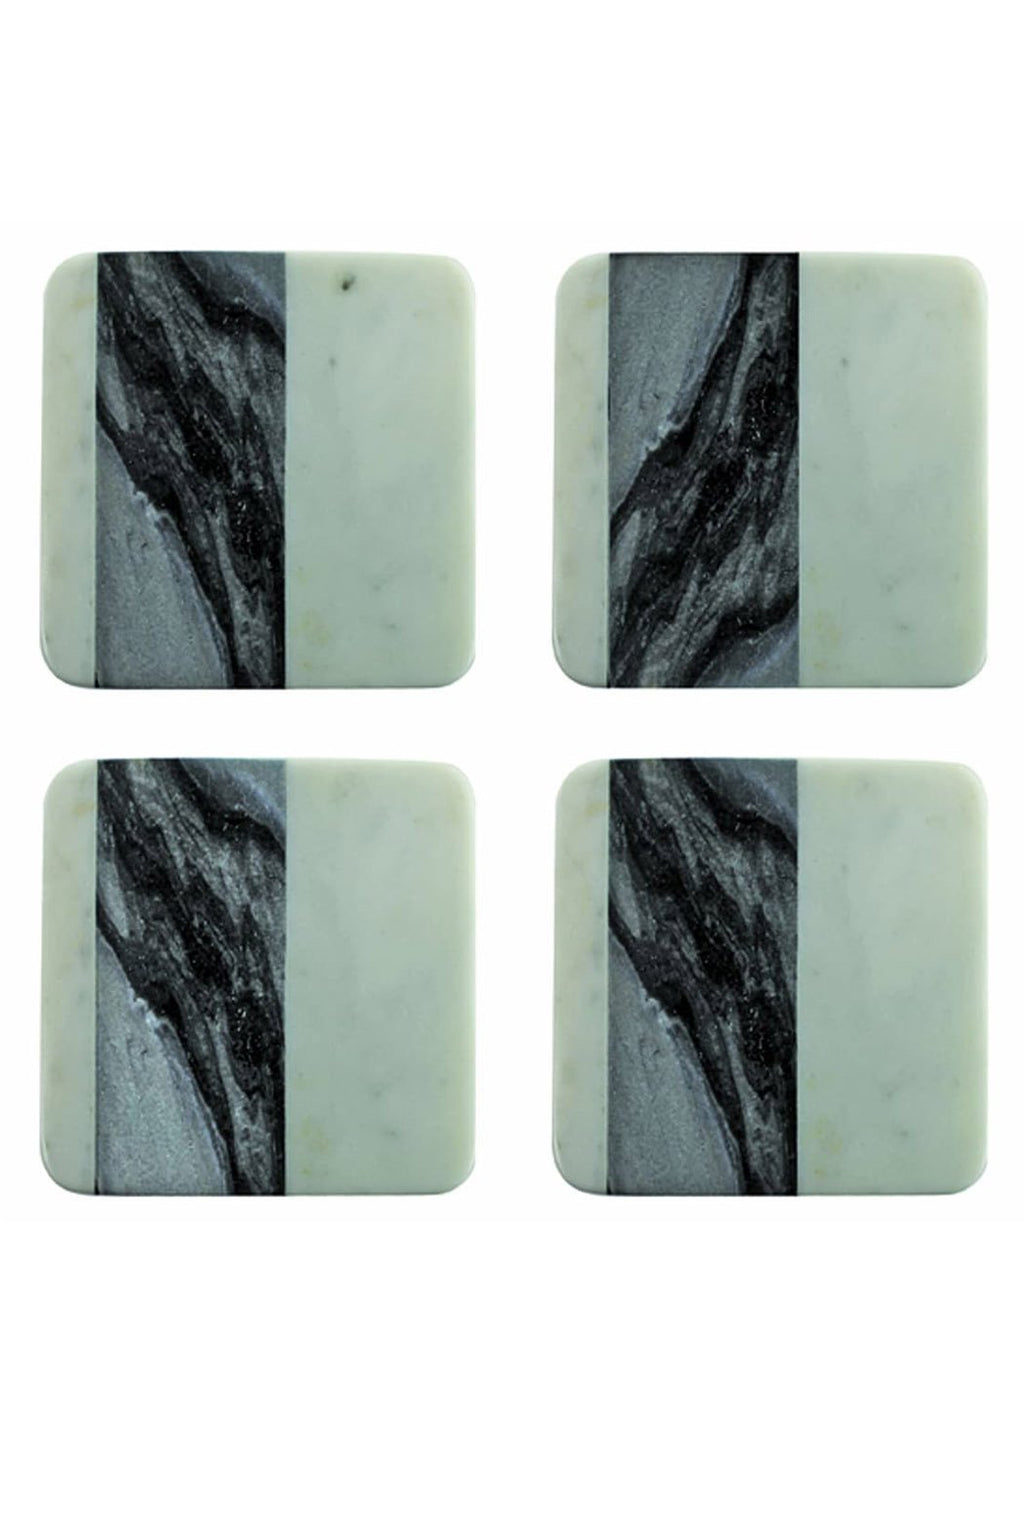 Be Home White + Gray Marble Coasters, Set of 4